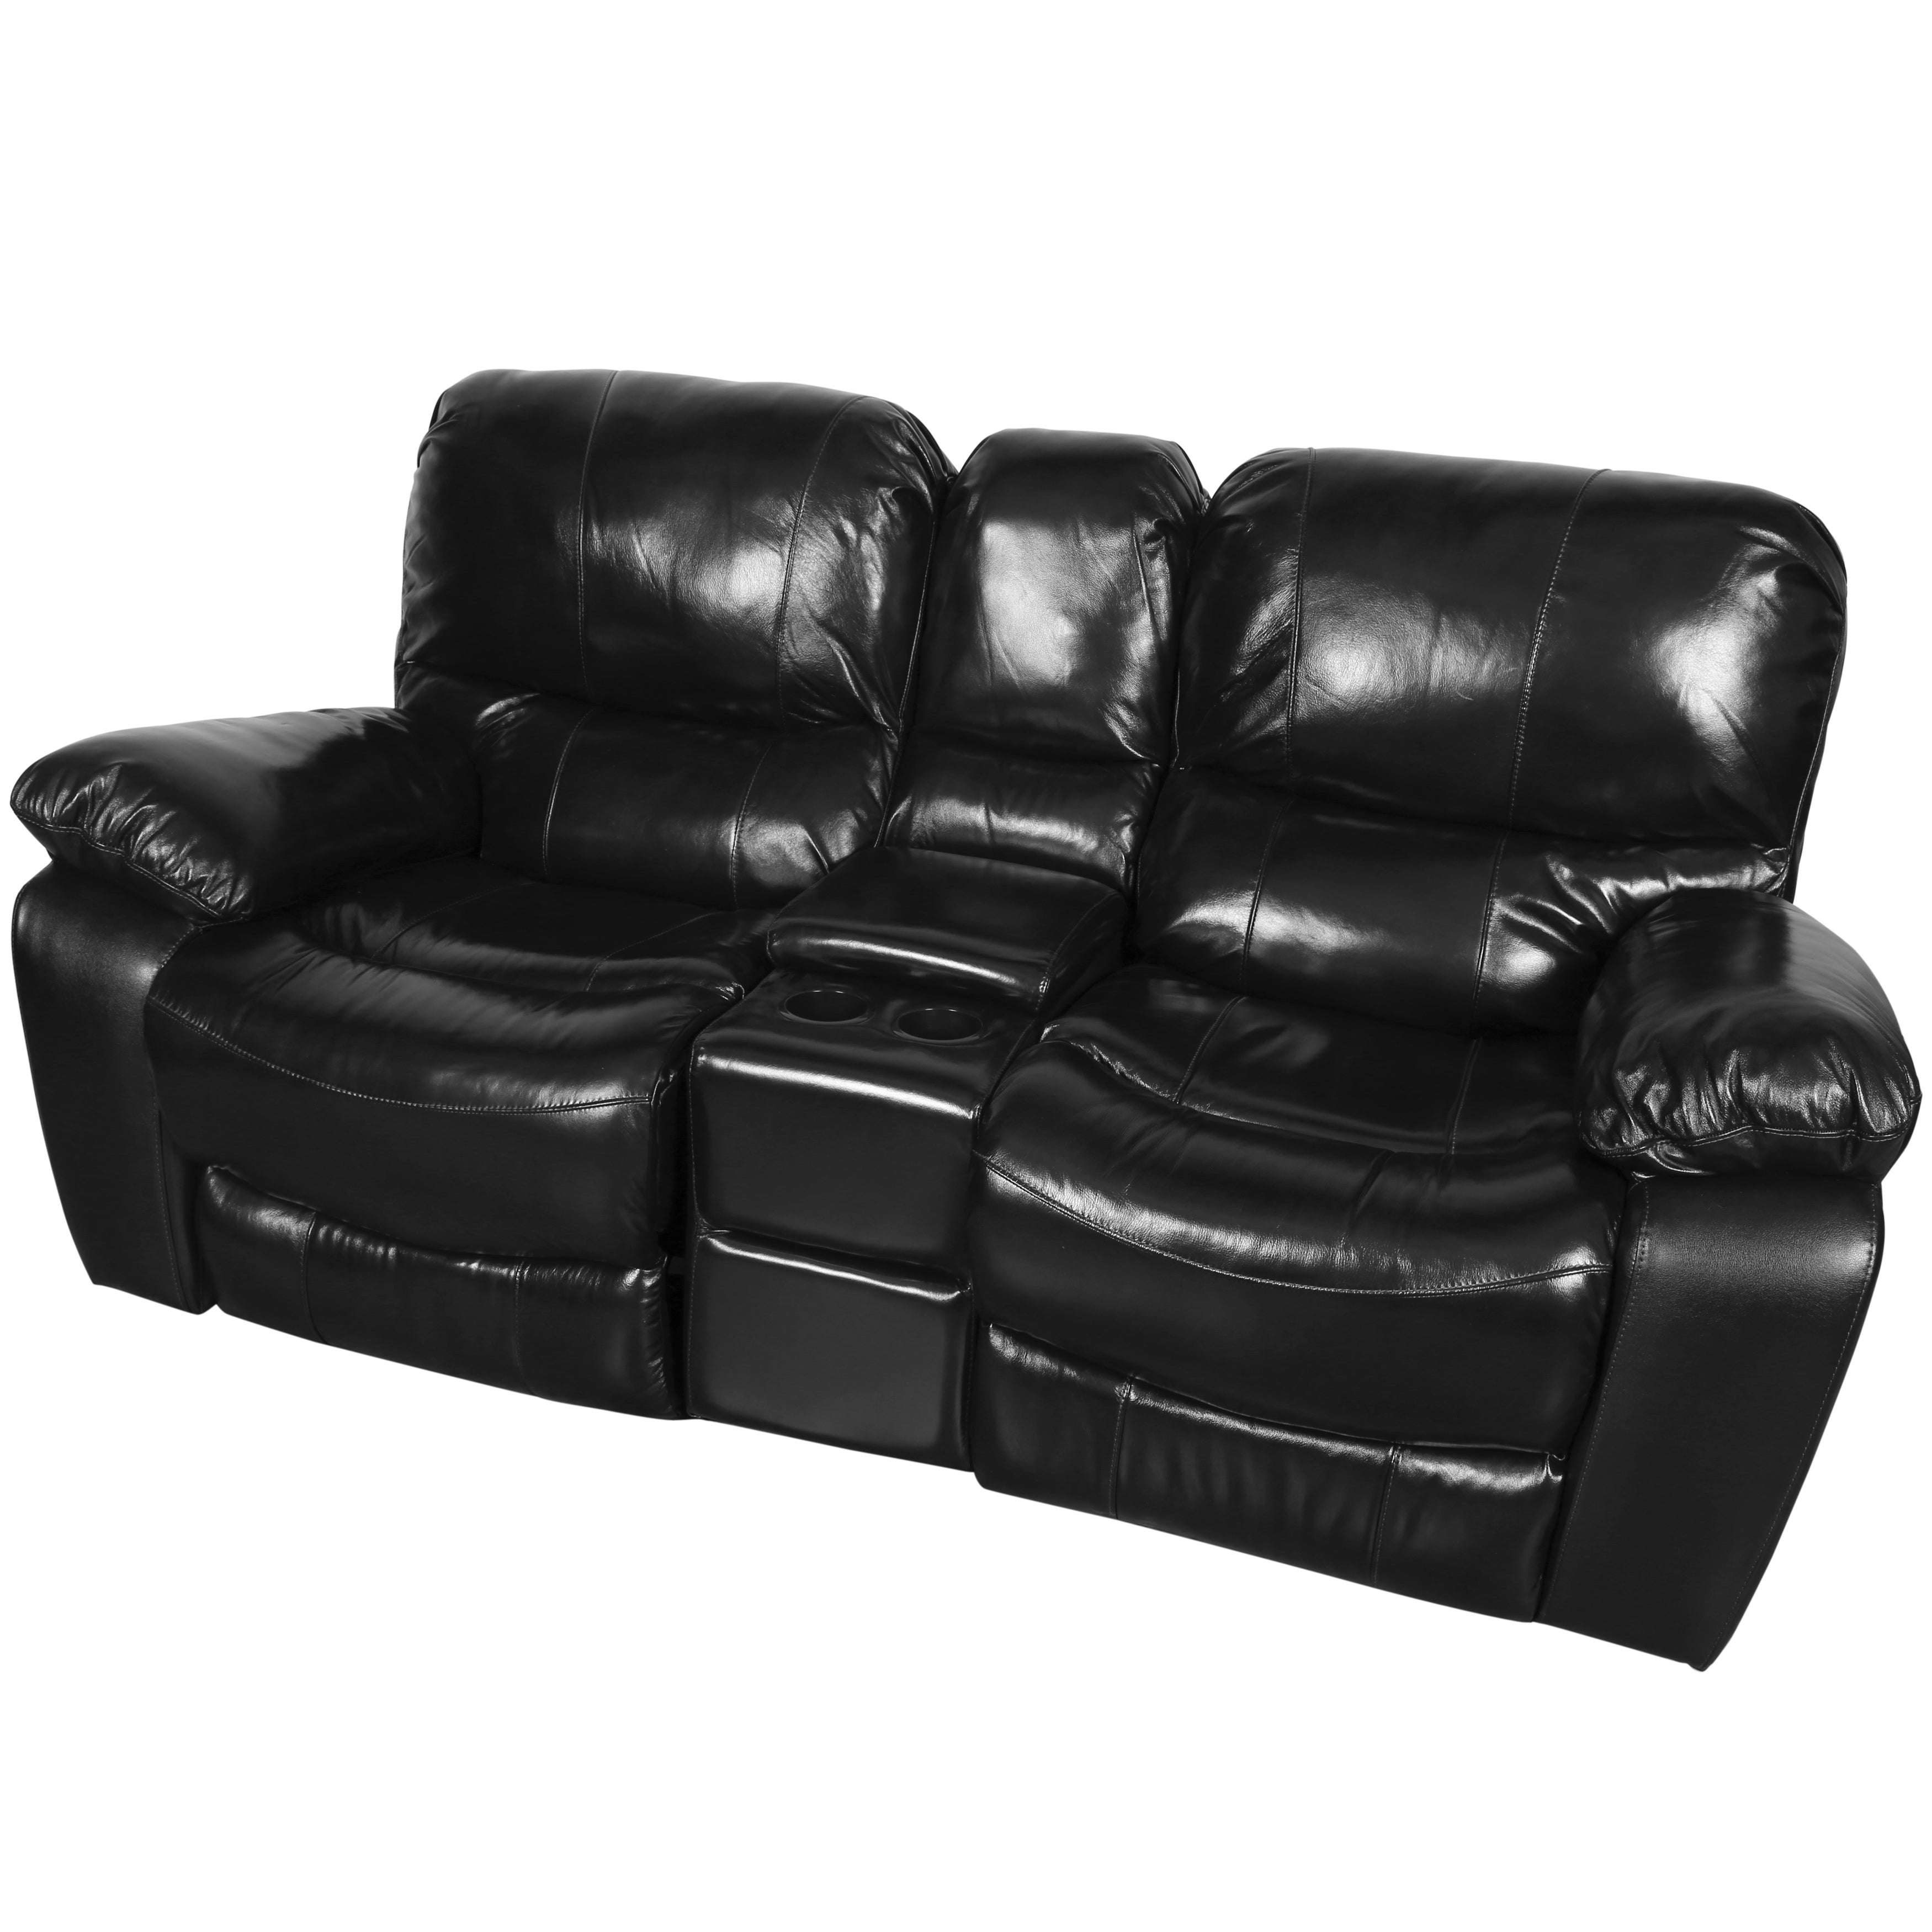 Porter Ramsey Black Cherry Top Grain Leather Gliding Reclining Loveseat With Center Console On Free Shipping Today 11893561